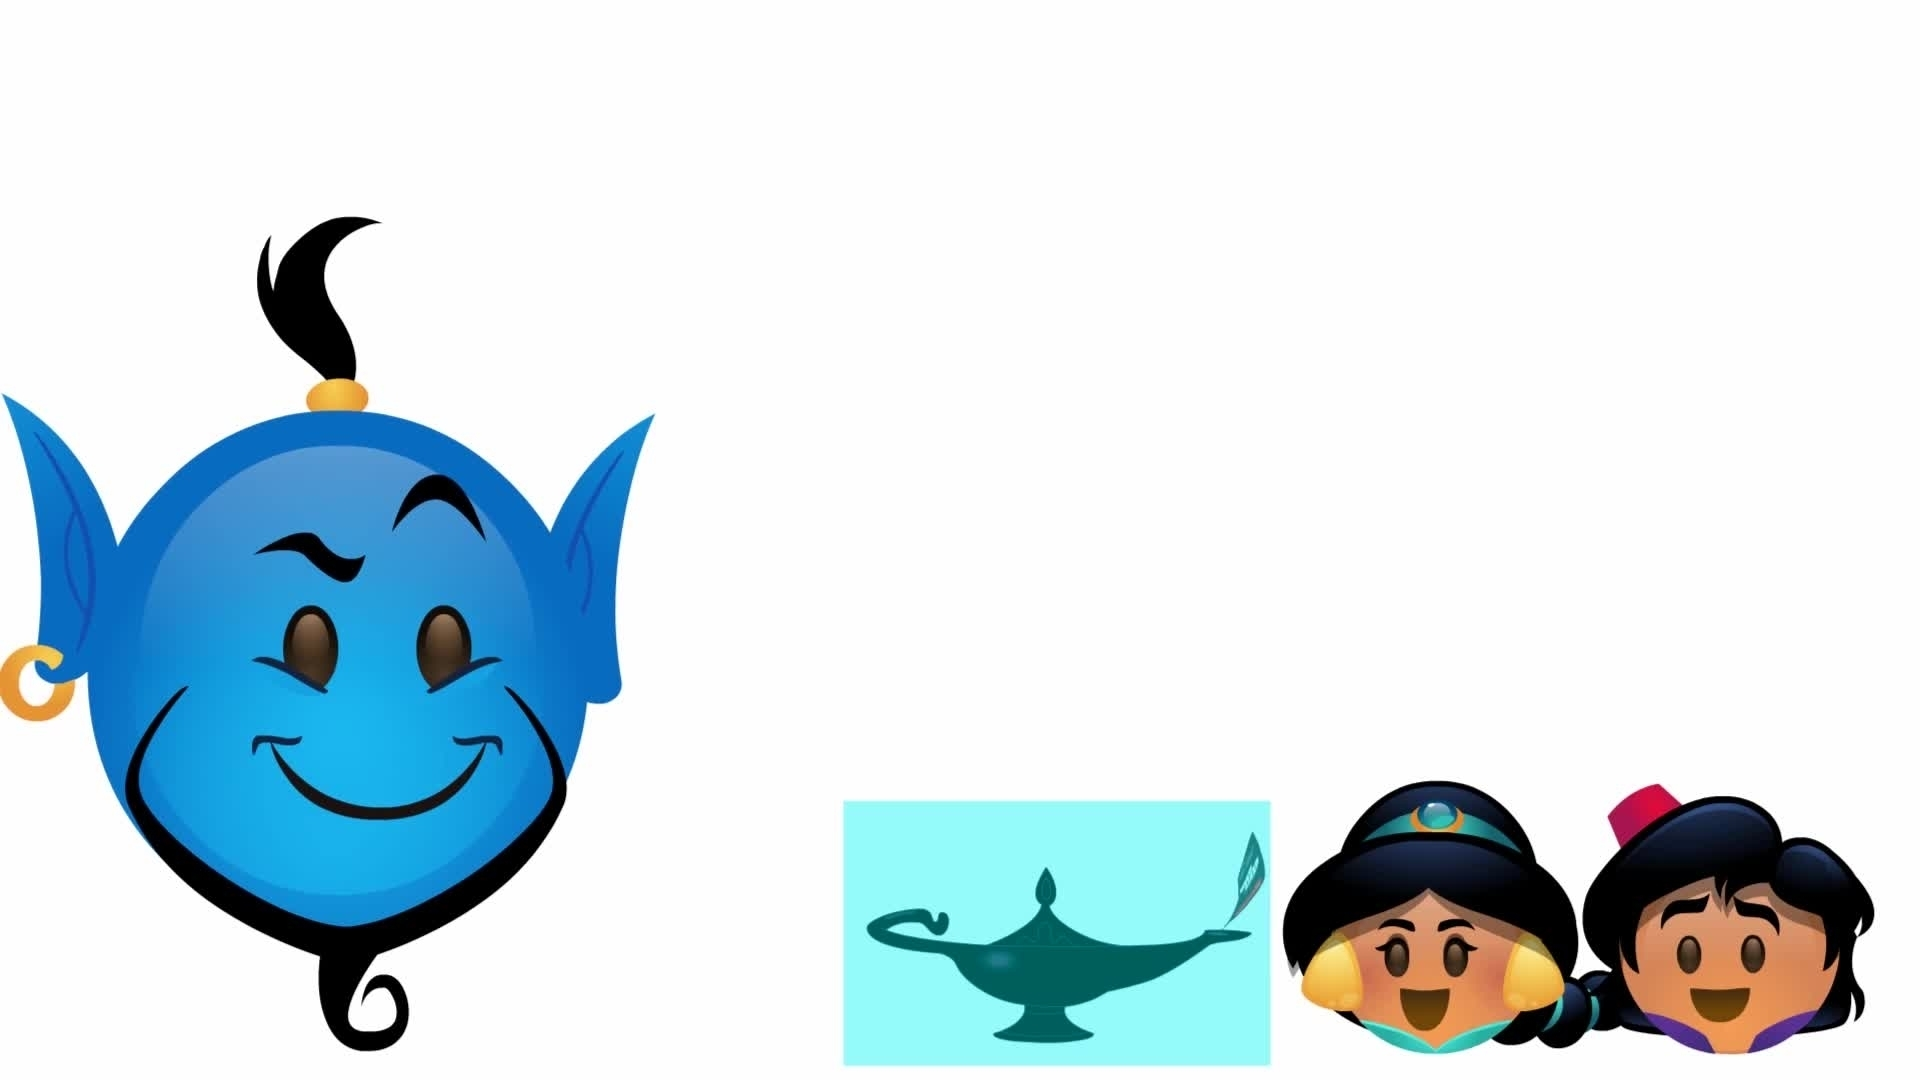 Aladdin - As Told By Emoji